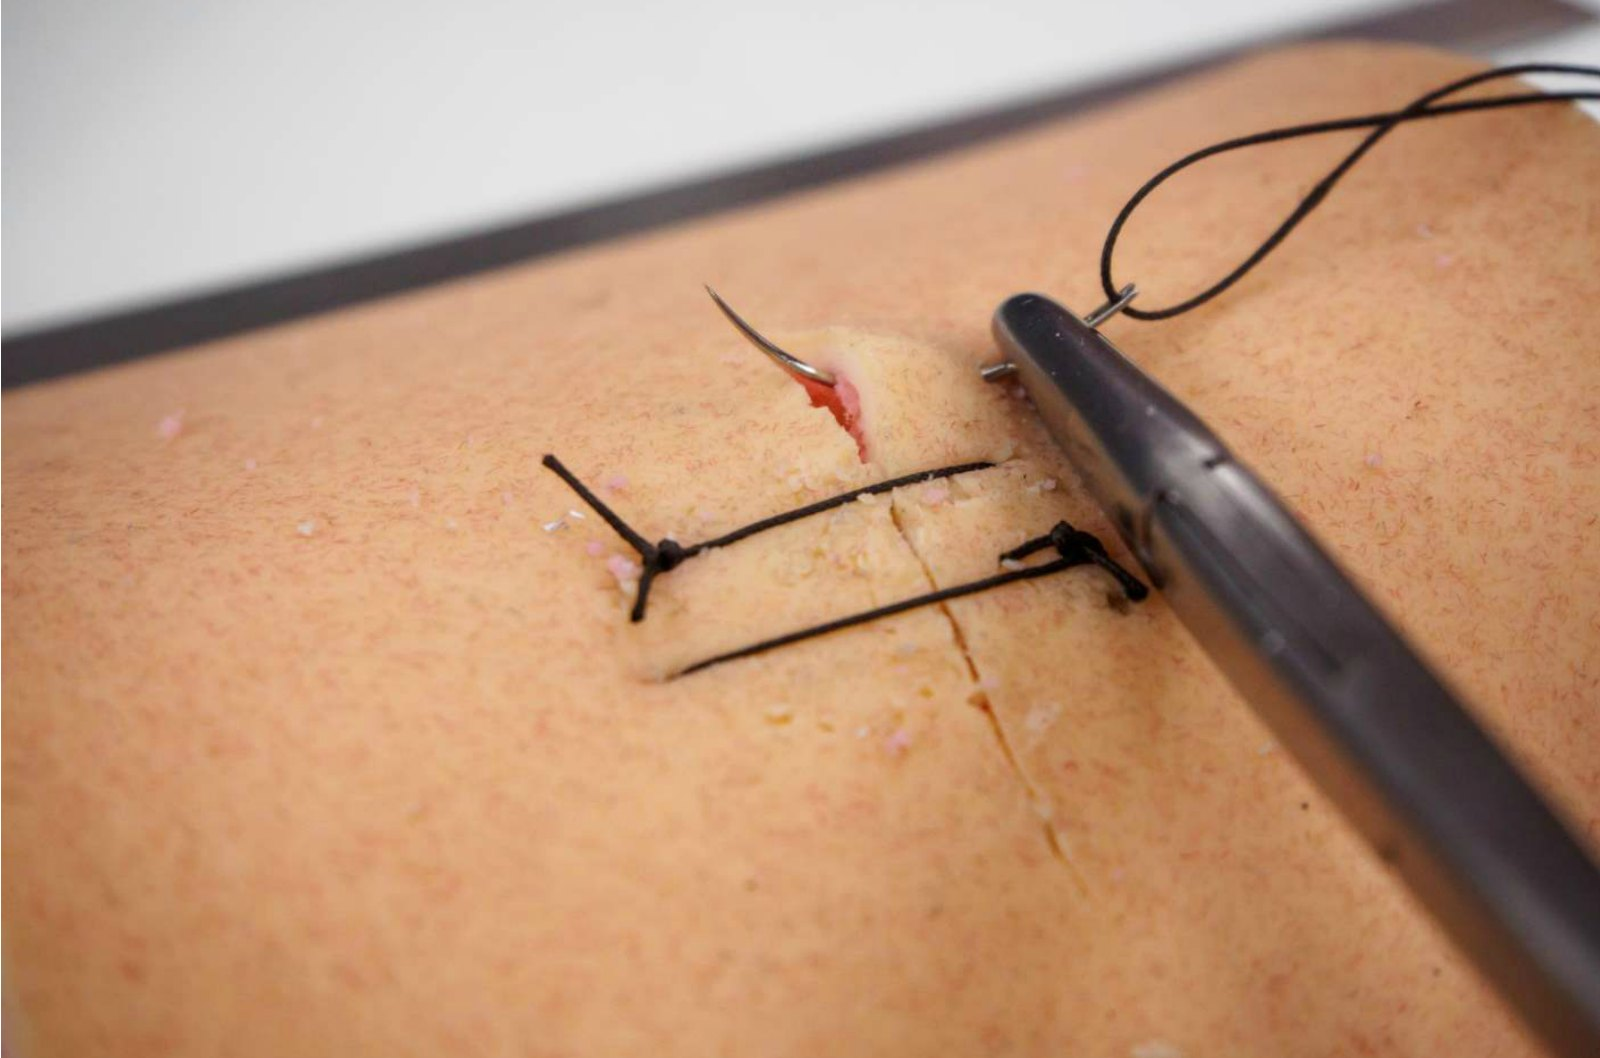 Veterinary Surgeons Make Suture Training More Like the Real Thing